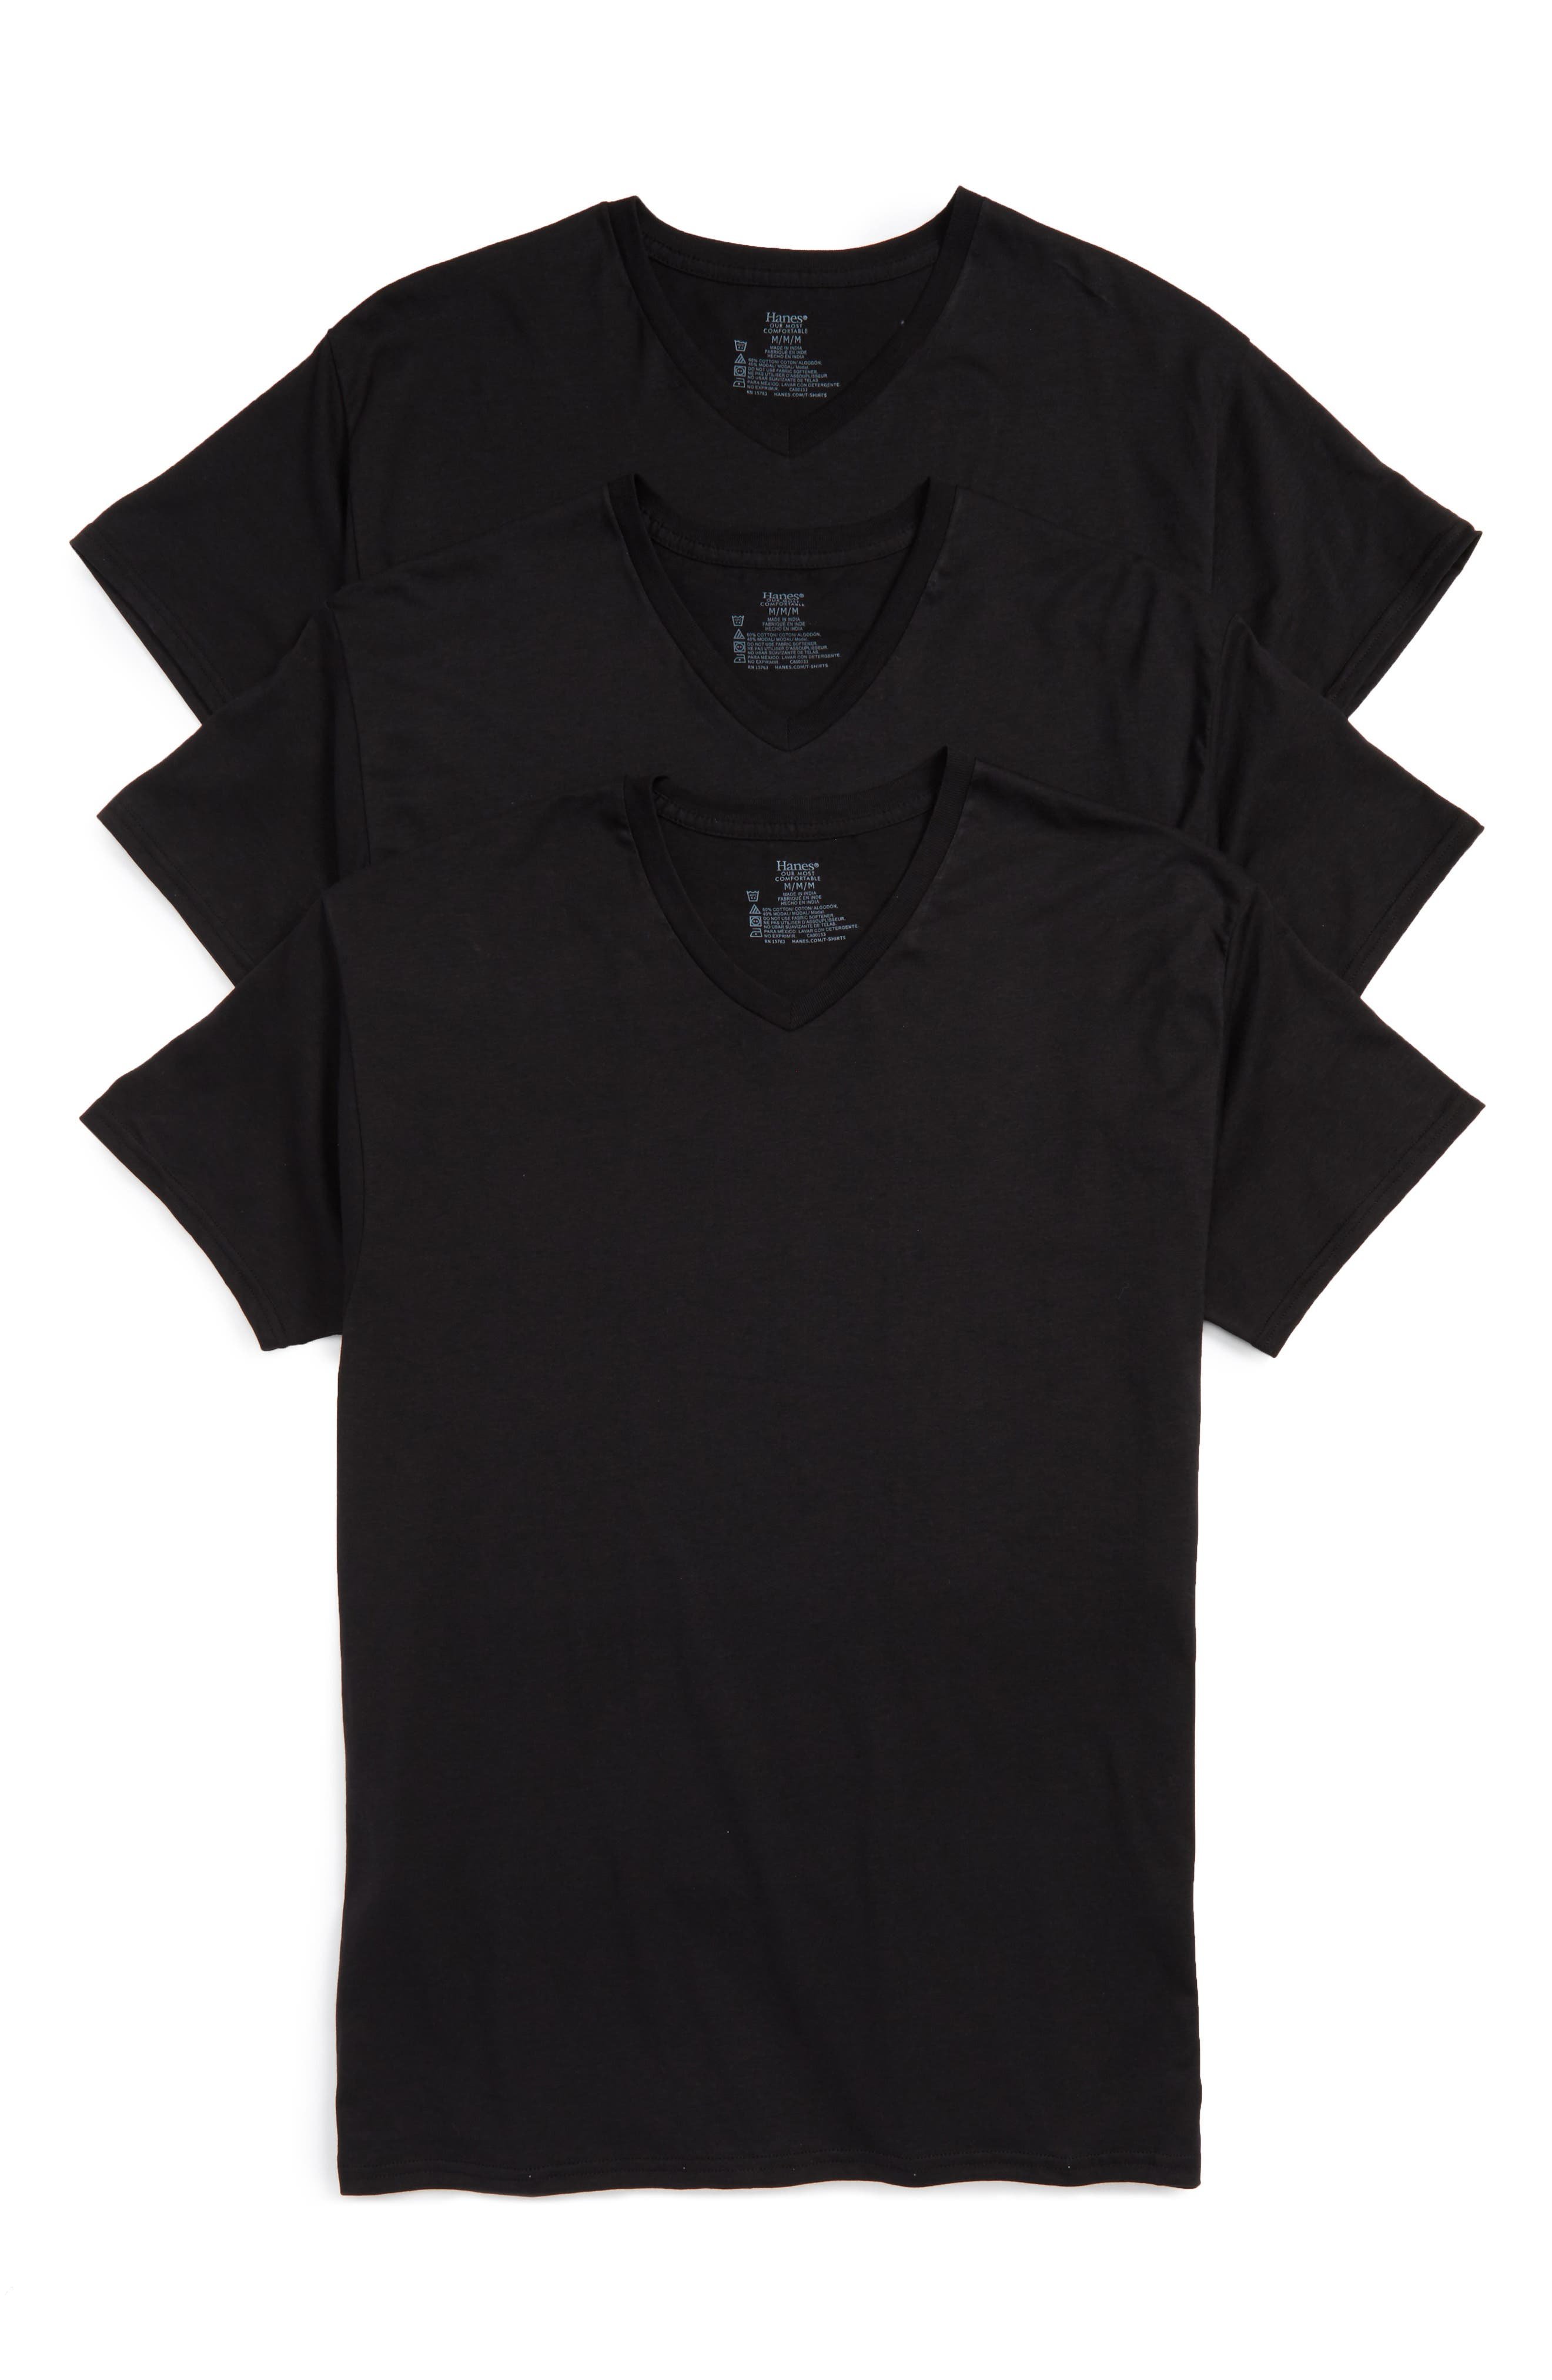 Alternate Image 1 Selected - Hanes Luxury Essentials 3-Pack V-Neck T-Shirt